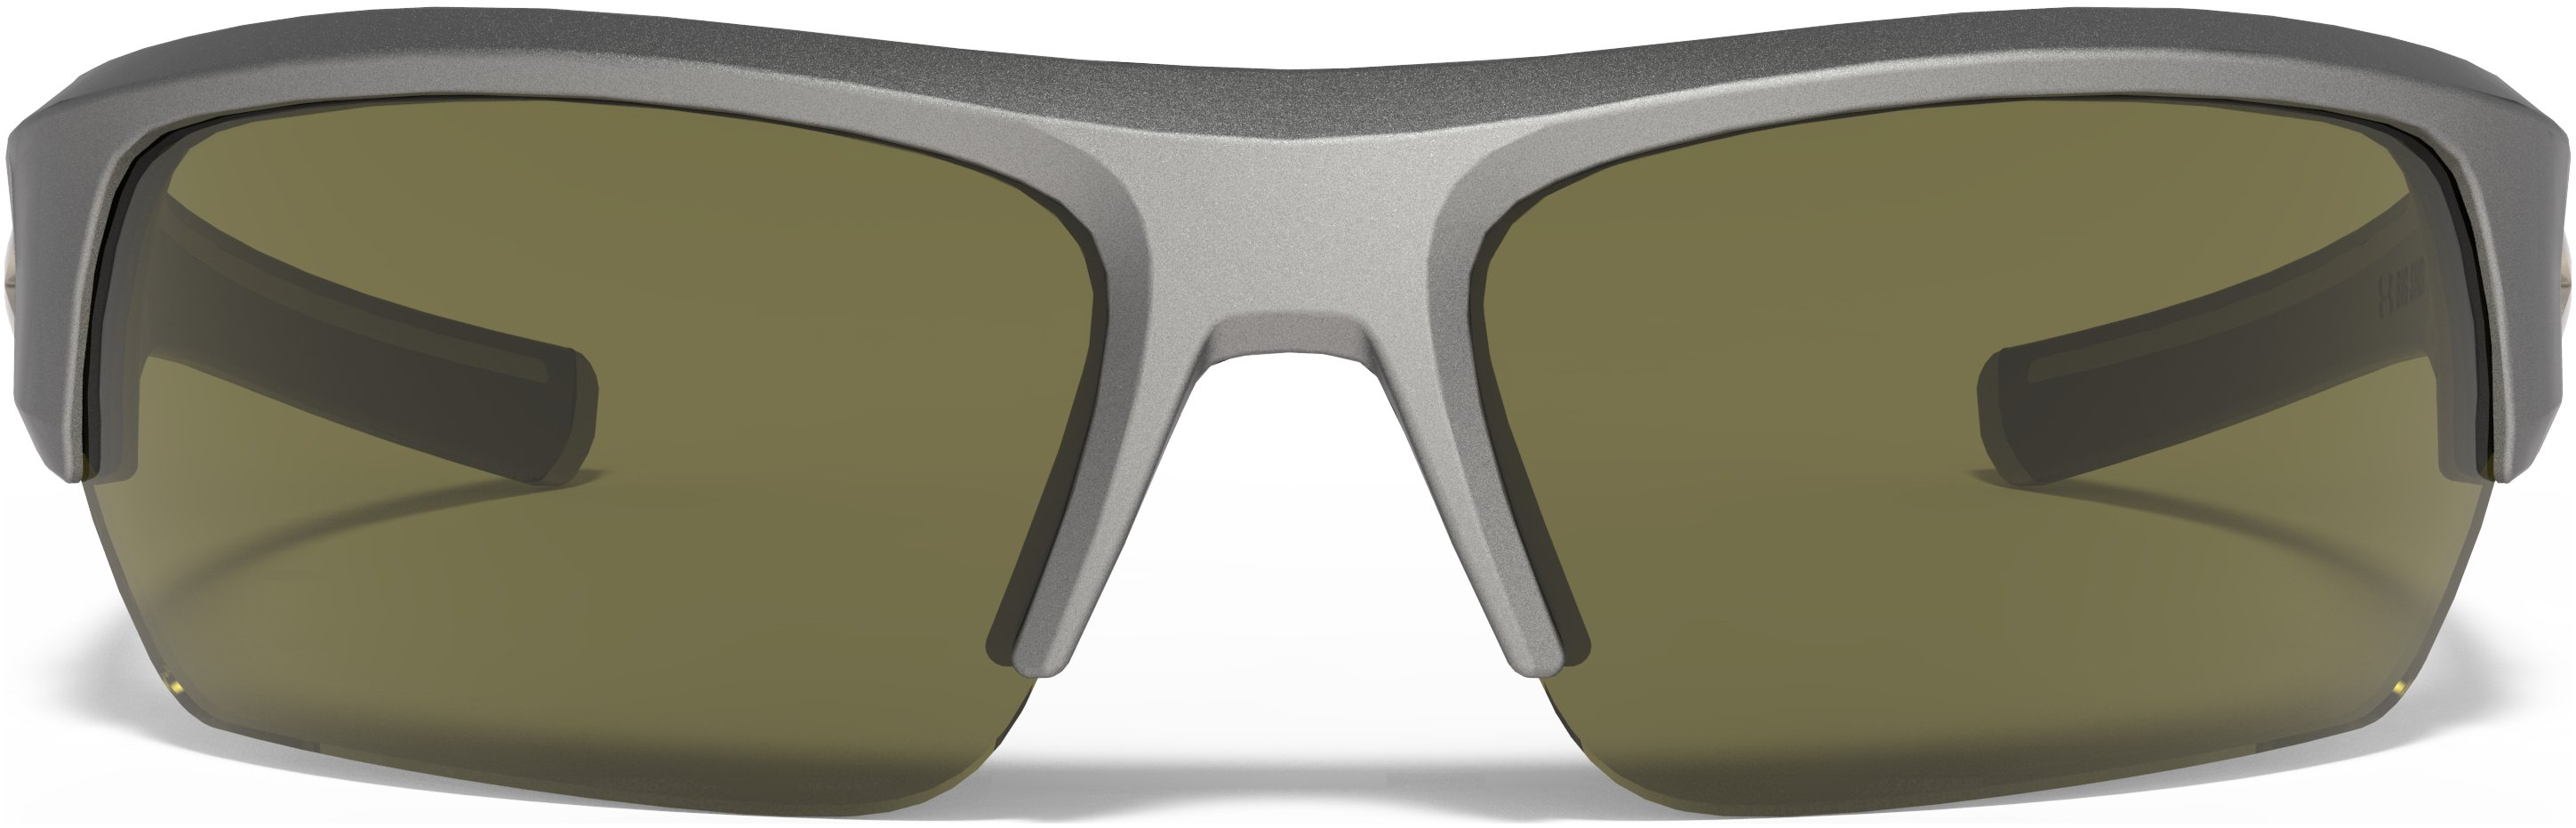 UA Big Shot Sunglasses, Satin Carbon, undefined